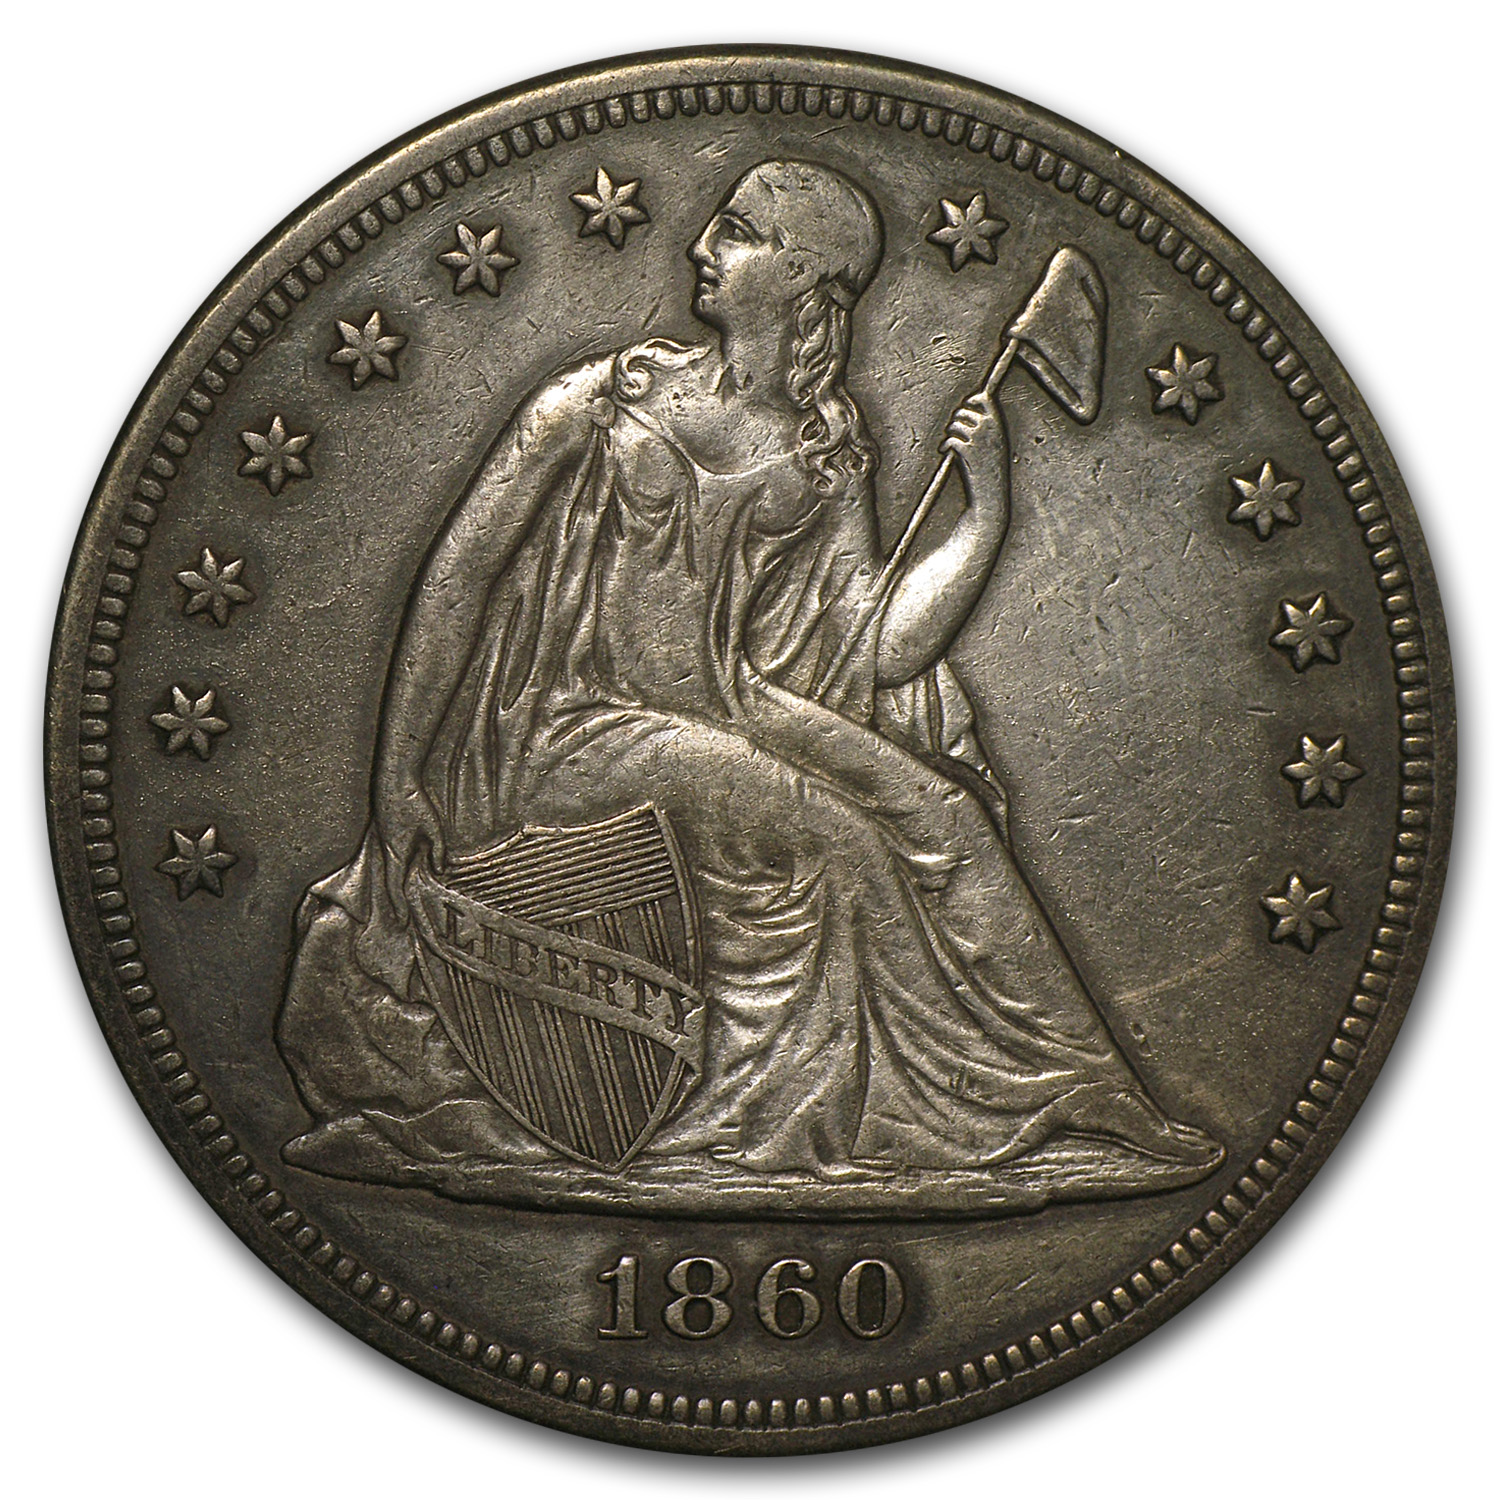 1860 Liberty Seated Dollar - Extra Fine